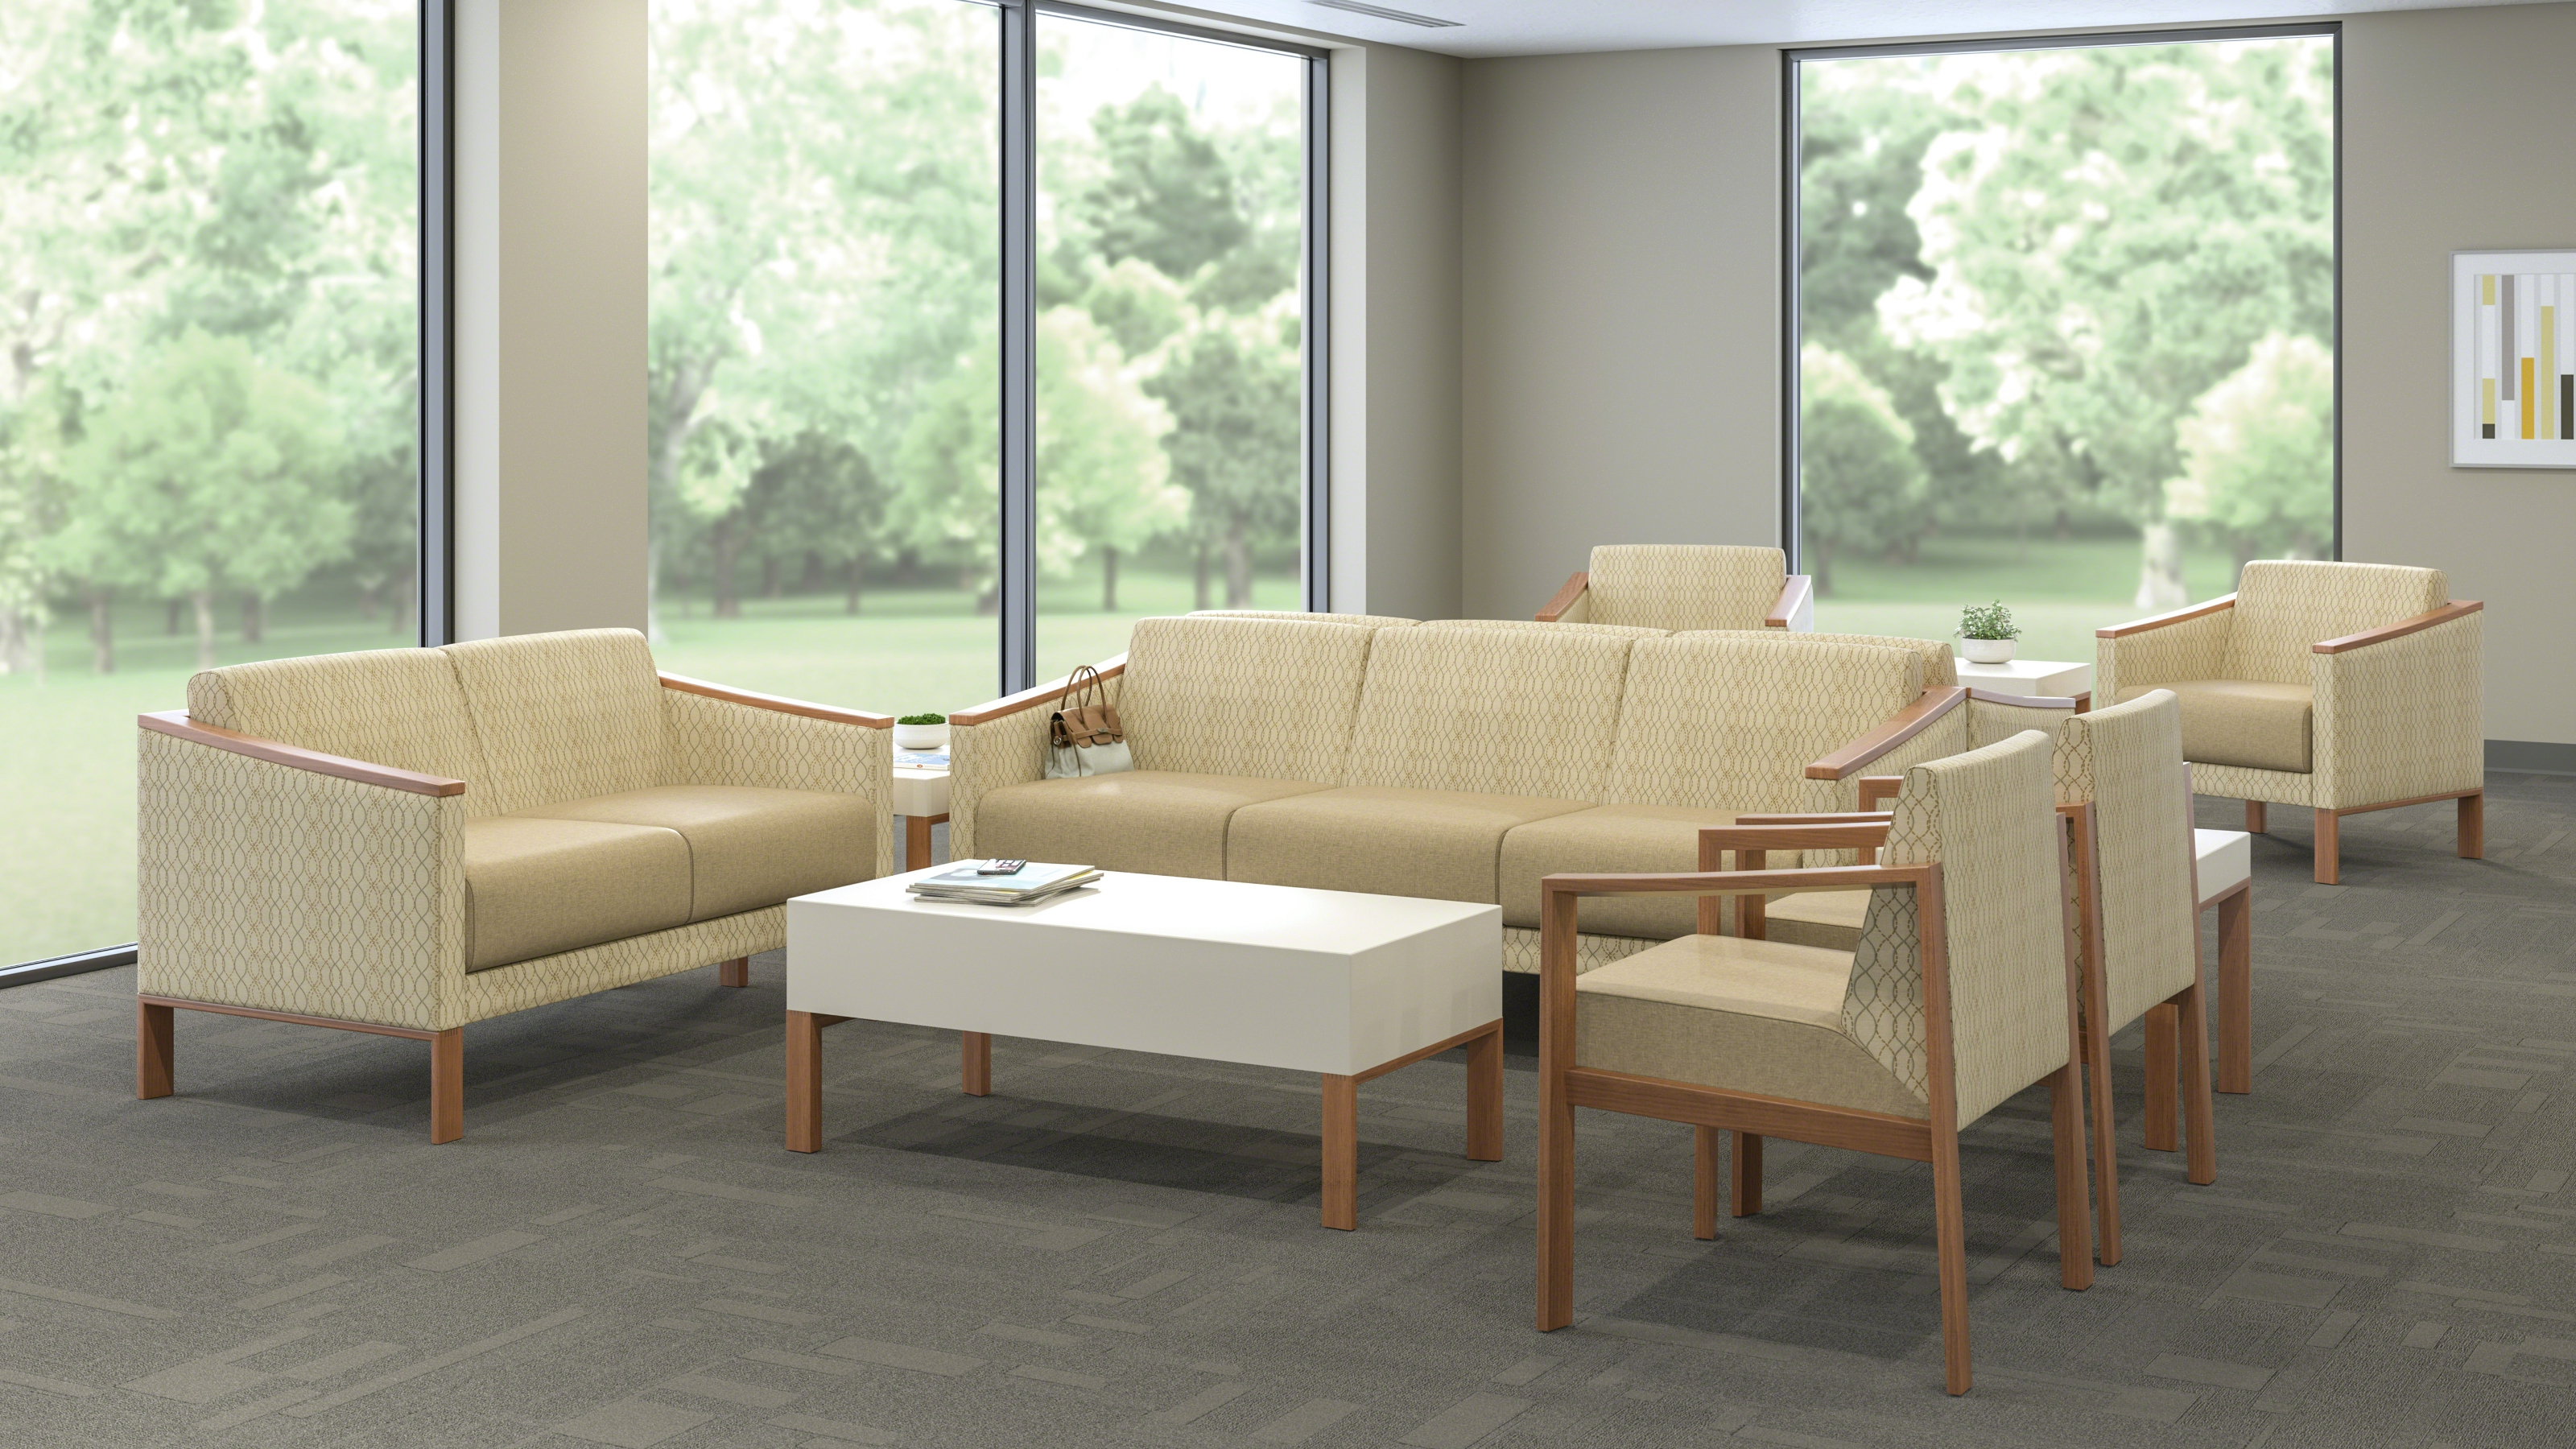 Tava Lounge Seating & Contemporary Tables Steelcase Health